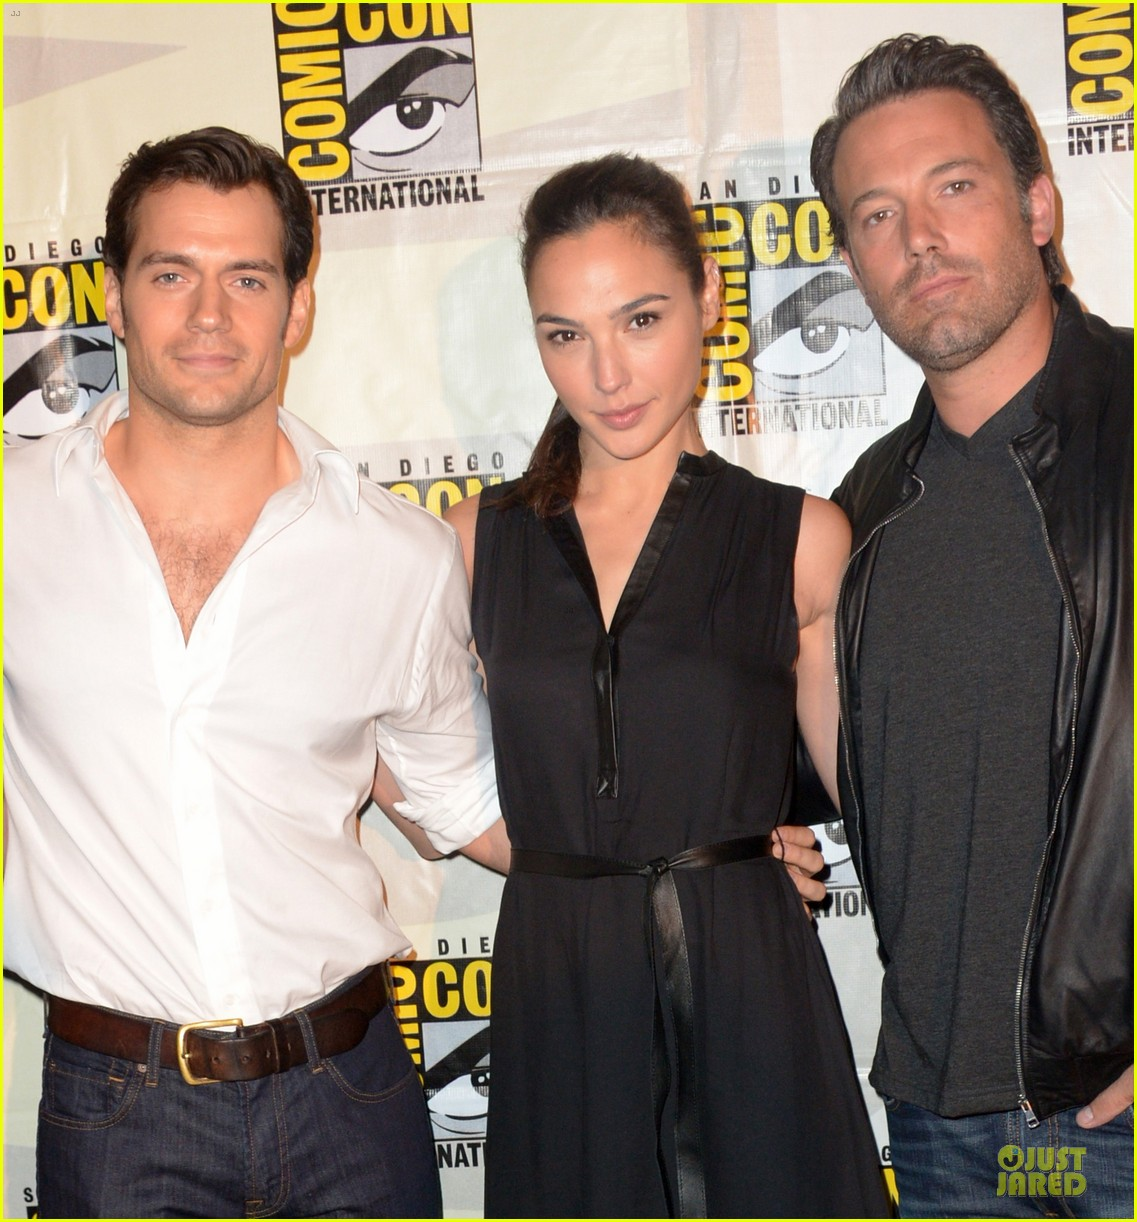 henry-cavill-ben-affleck-surprise-comic-